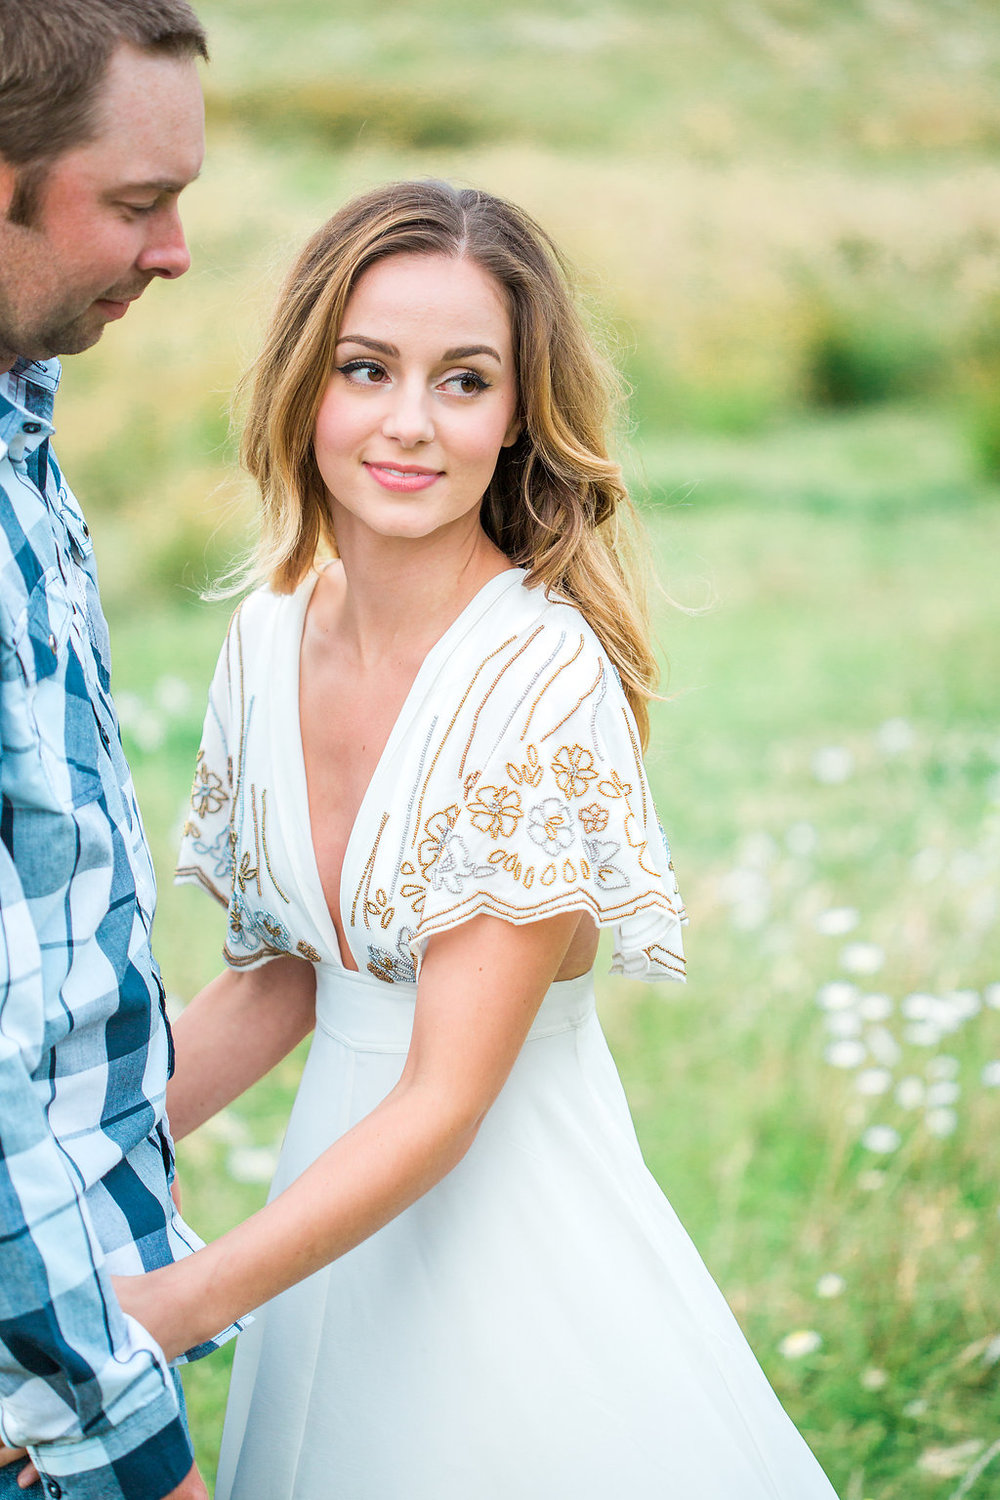 Beautiful outdoor engagement session | What to wear | Photo Inspiration | Engagement session | White | Detail Shots | Mastin Labs | Engaged | Fuji 400 | Portrait | Couple in Love